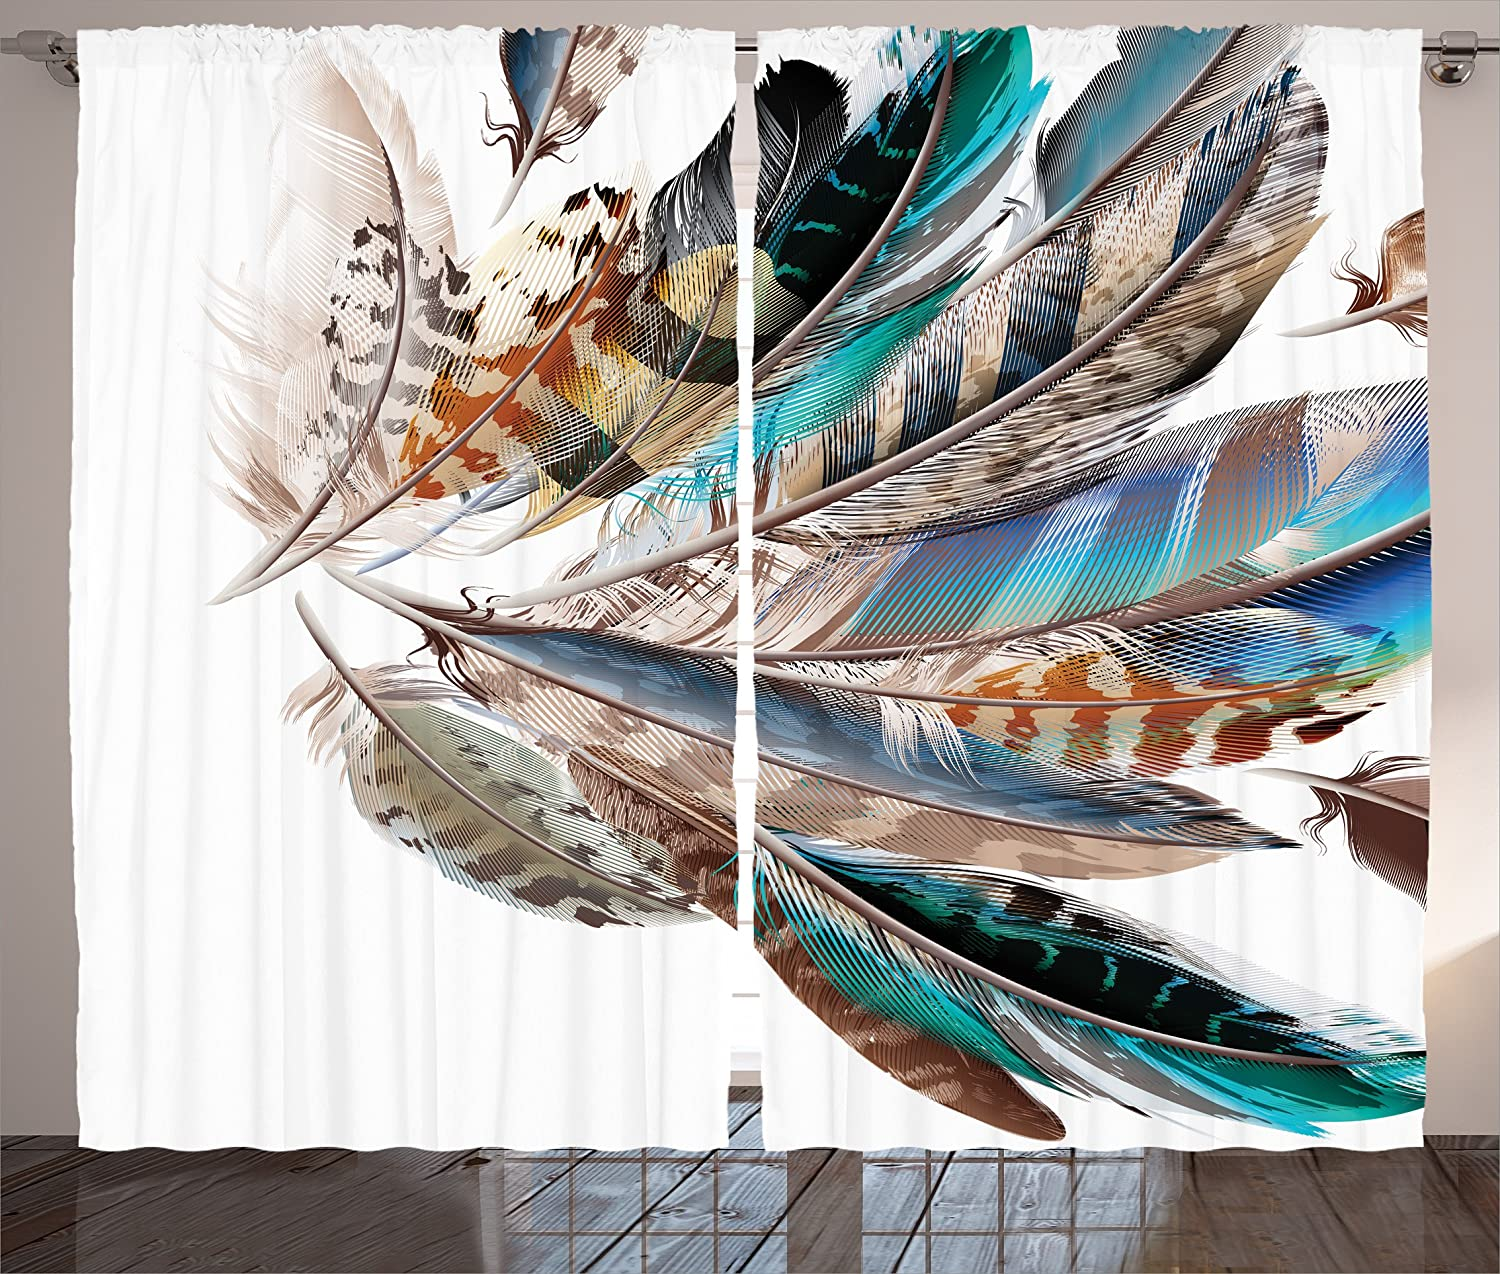 "Ambesonne Feathers Curtains, Vaned Types and Natal Contour Flight Bird Feathers and Animal Skin Element Print, Living Room Bedroom Window Drapes 2 Panel Set, 108"" X 84"", Teal Brown"